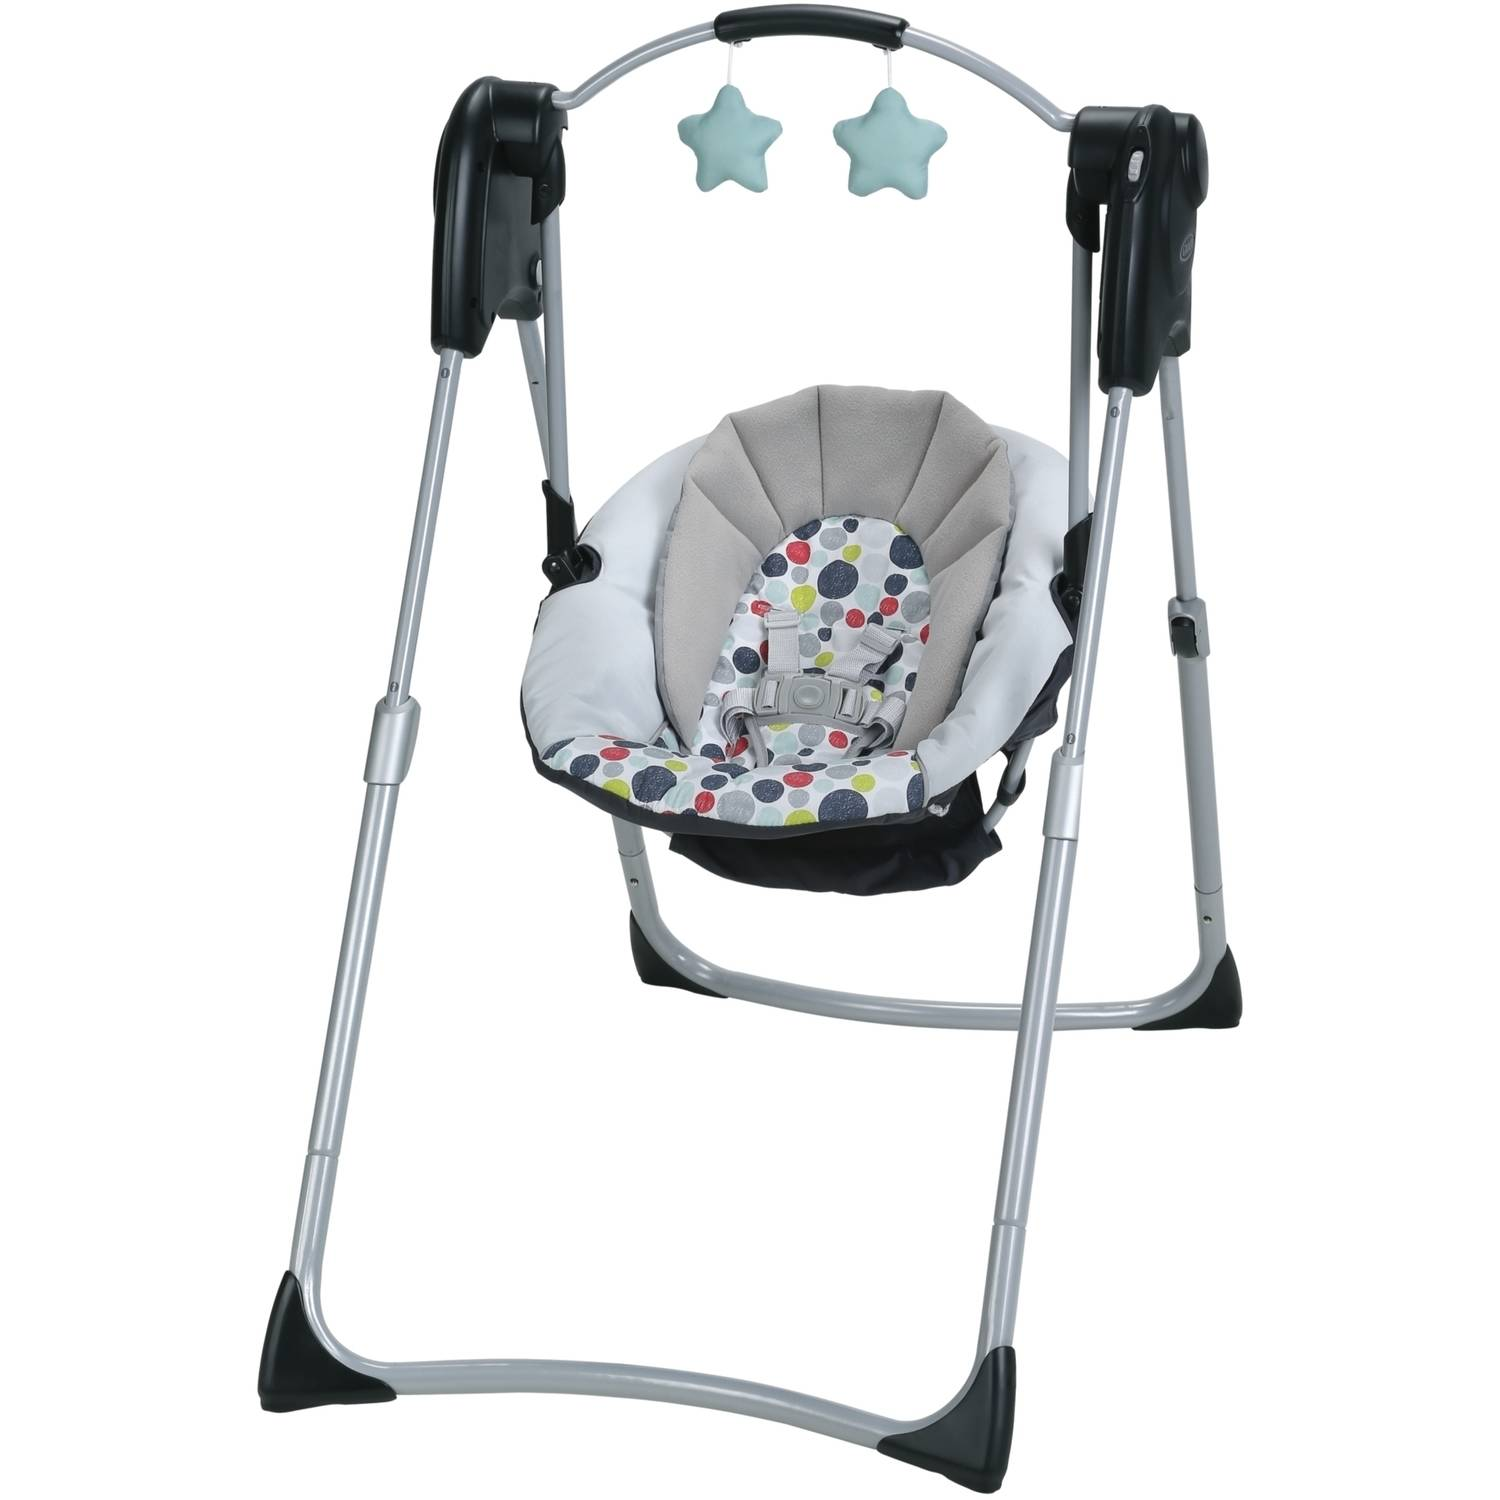 Graco Slim Spaces Compact Baby Swing, Etcher - Walmart.com